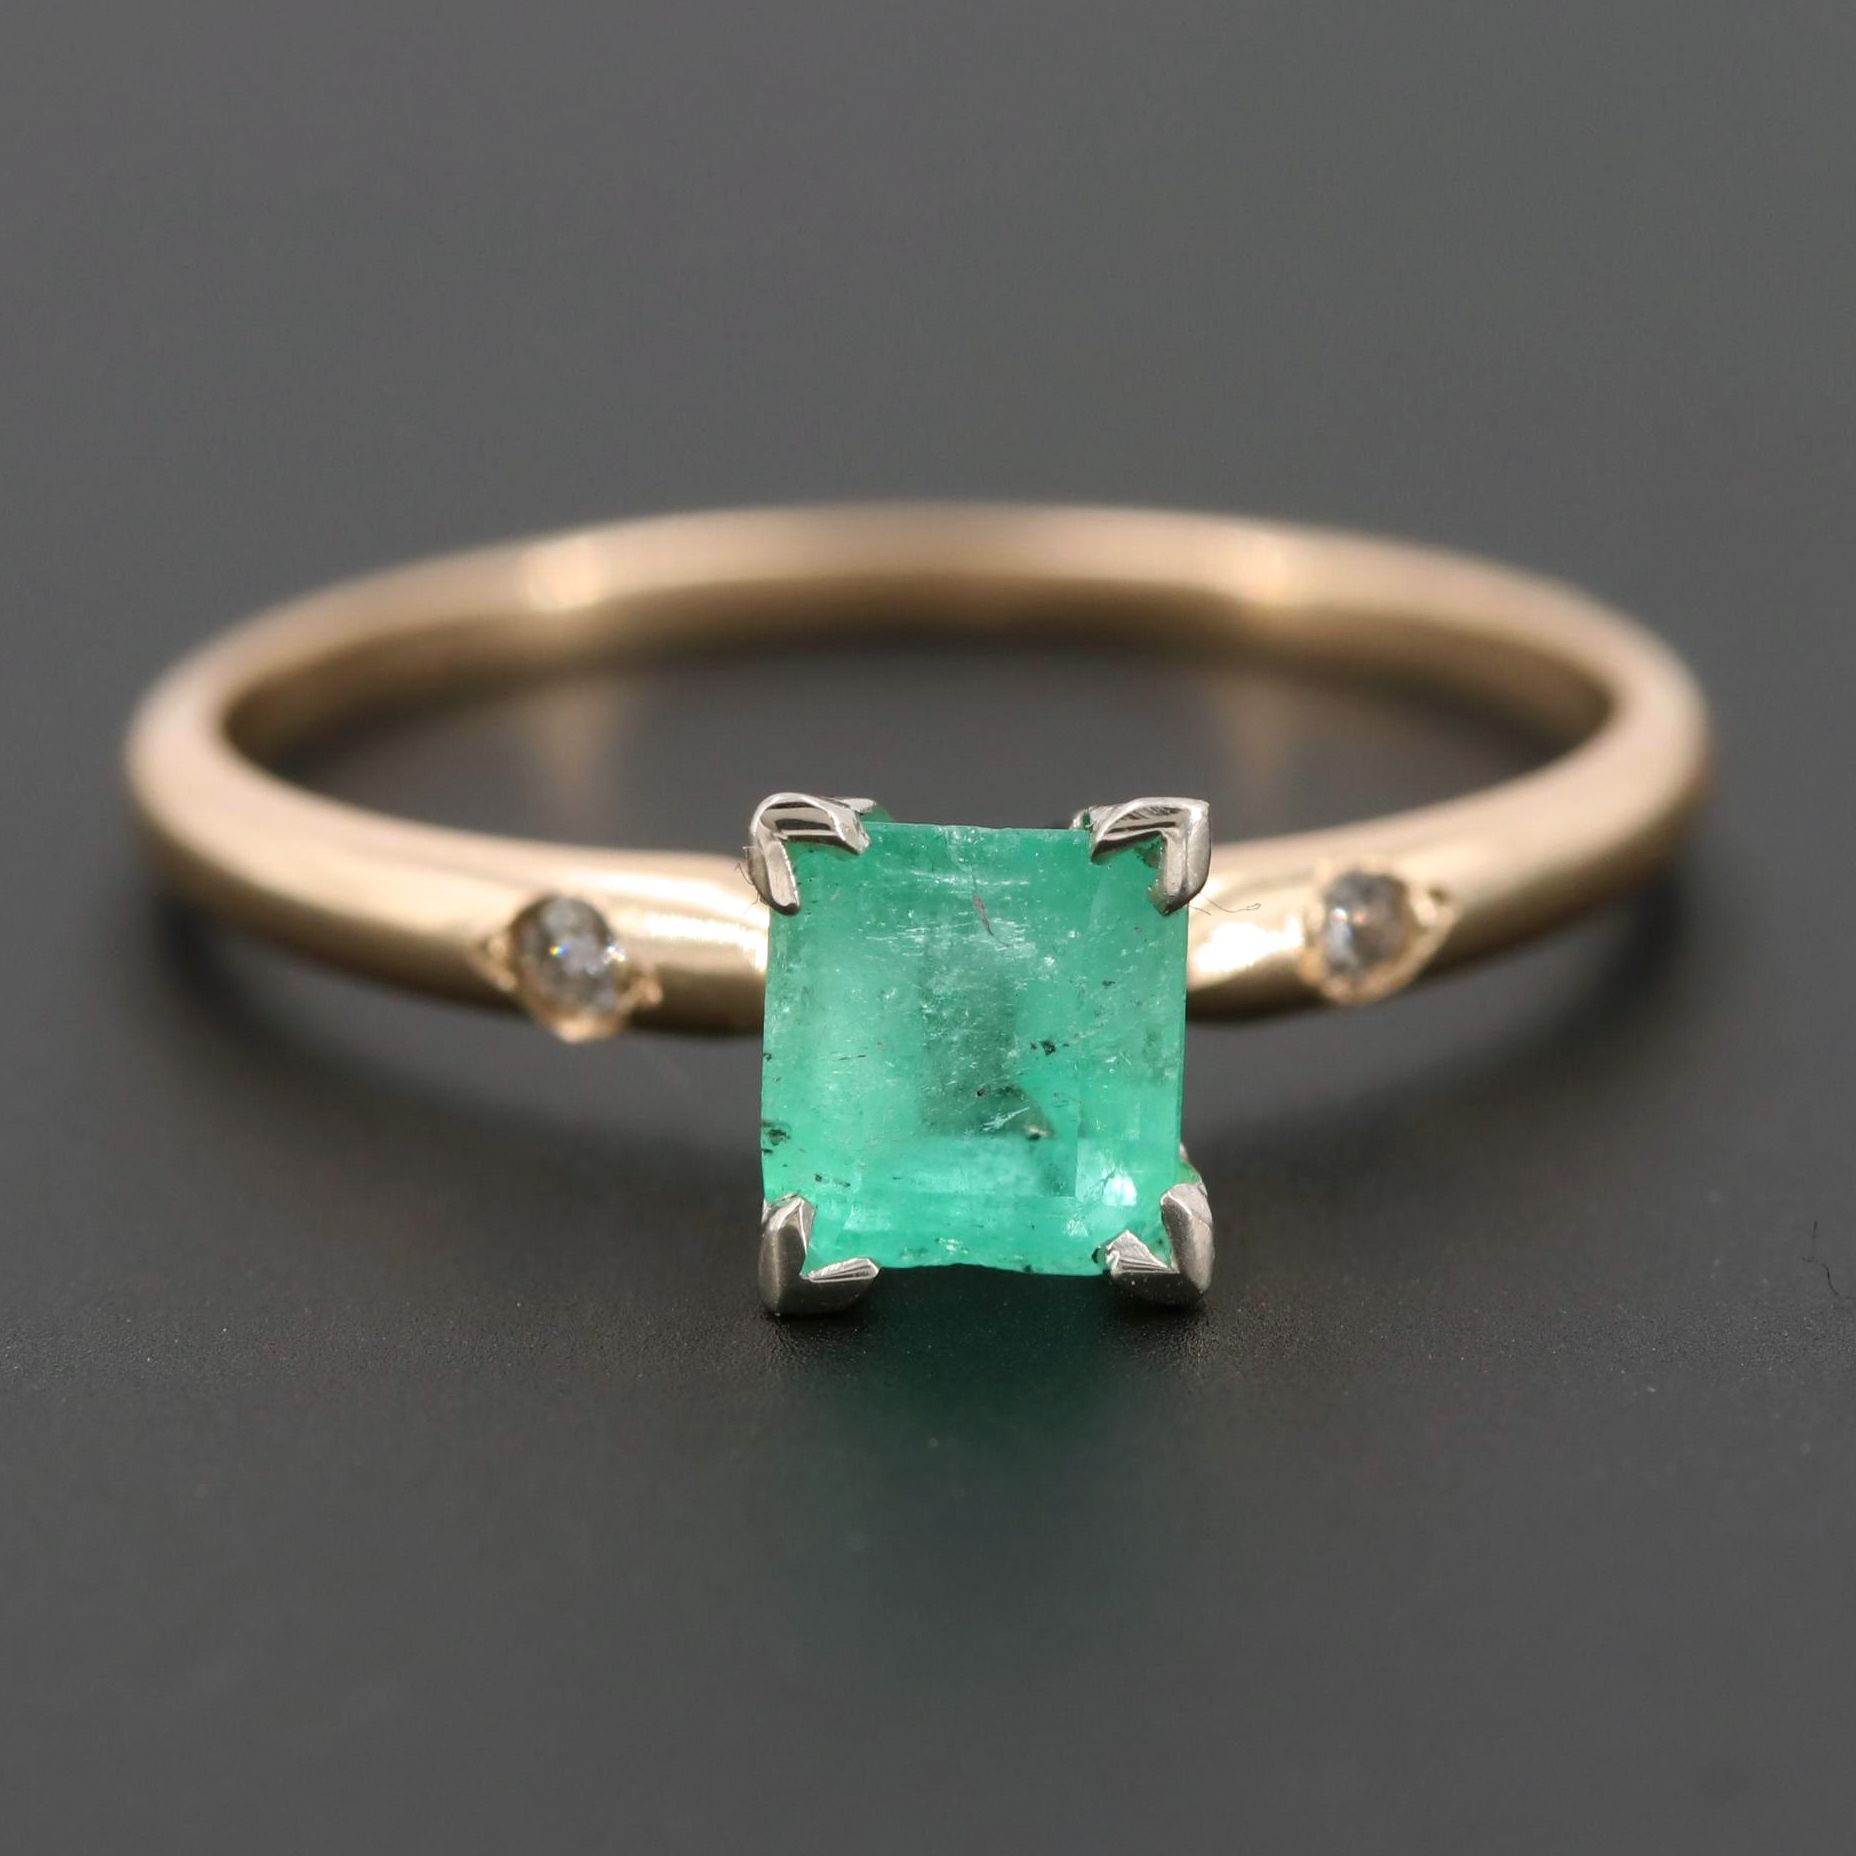 14K Yellow and White Gold Emerald and Diamond Ring